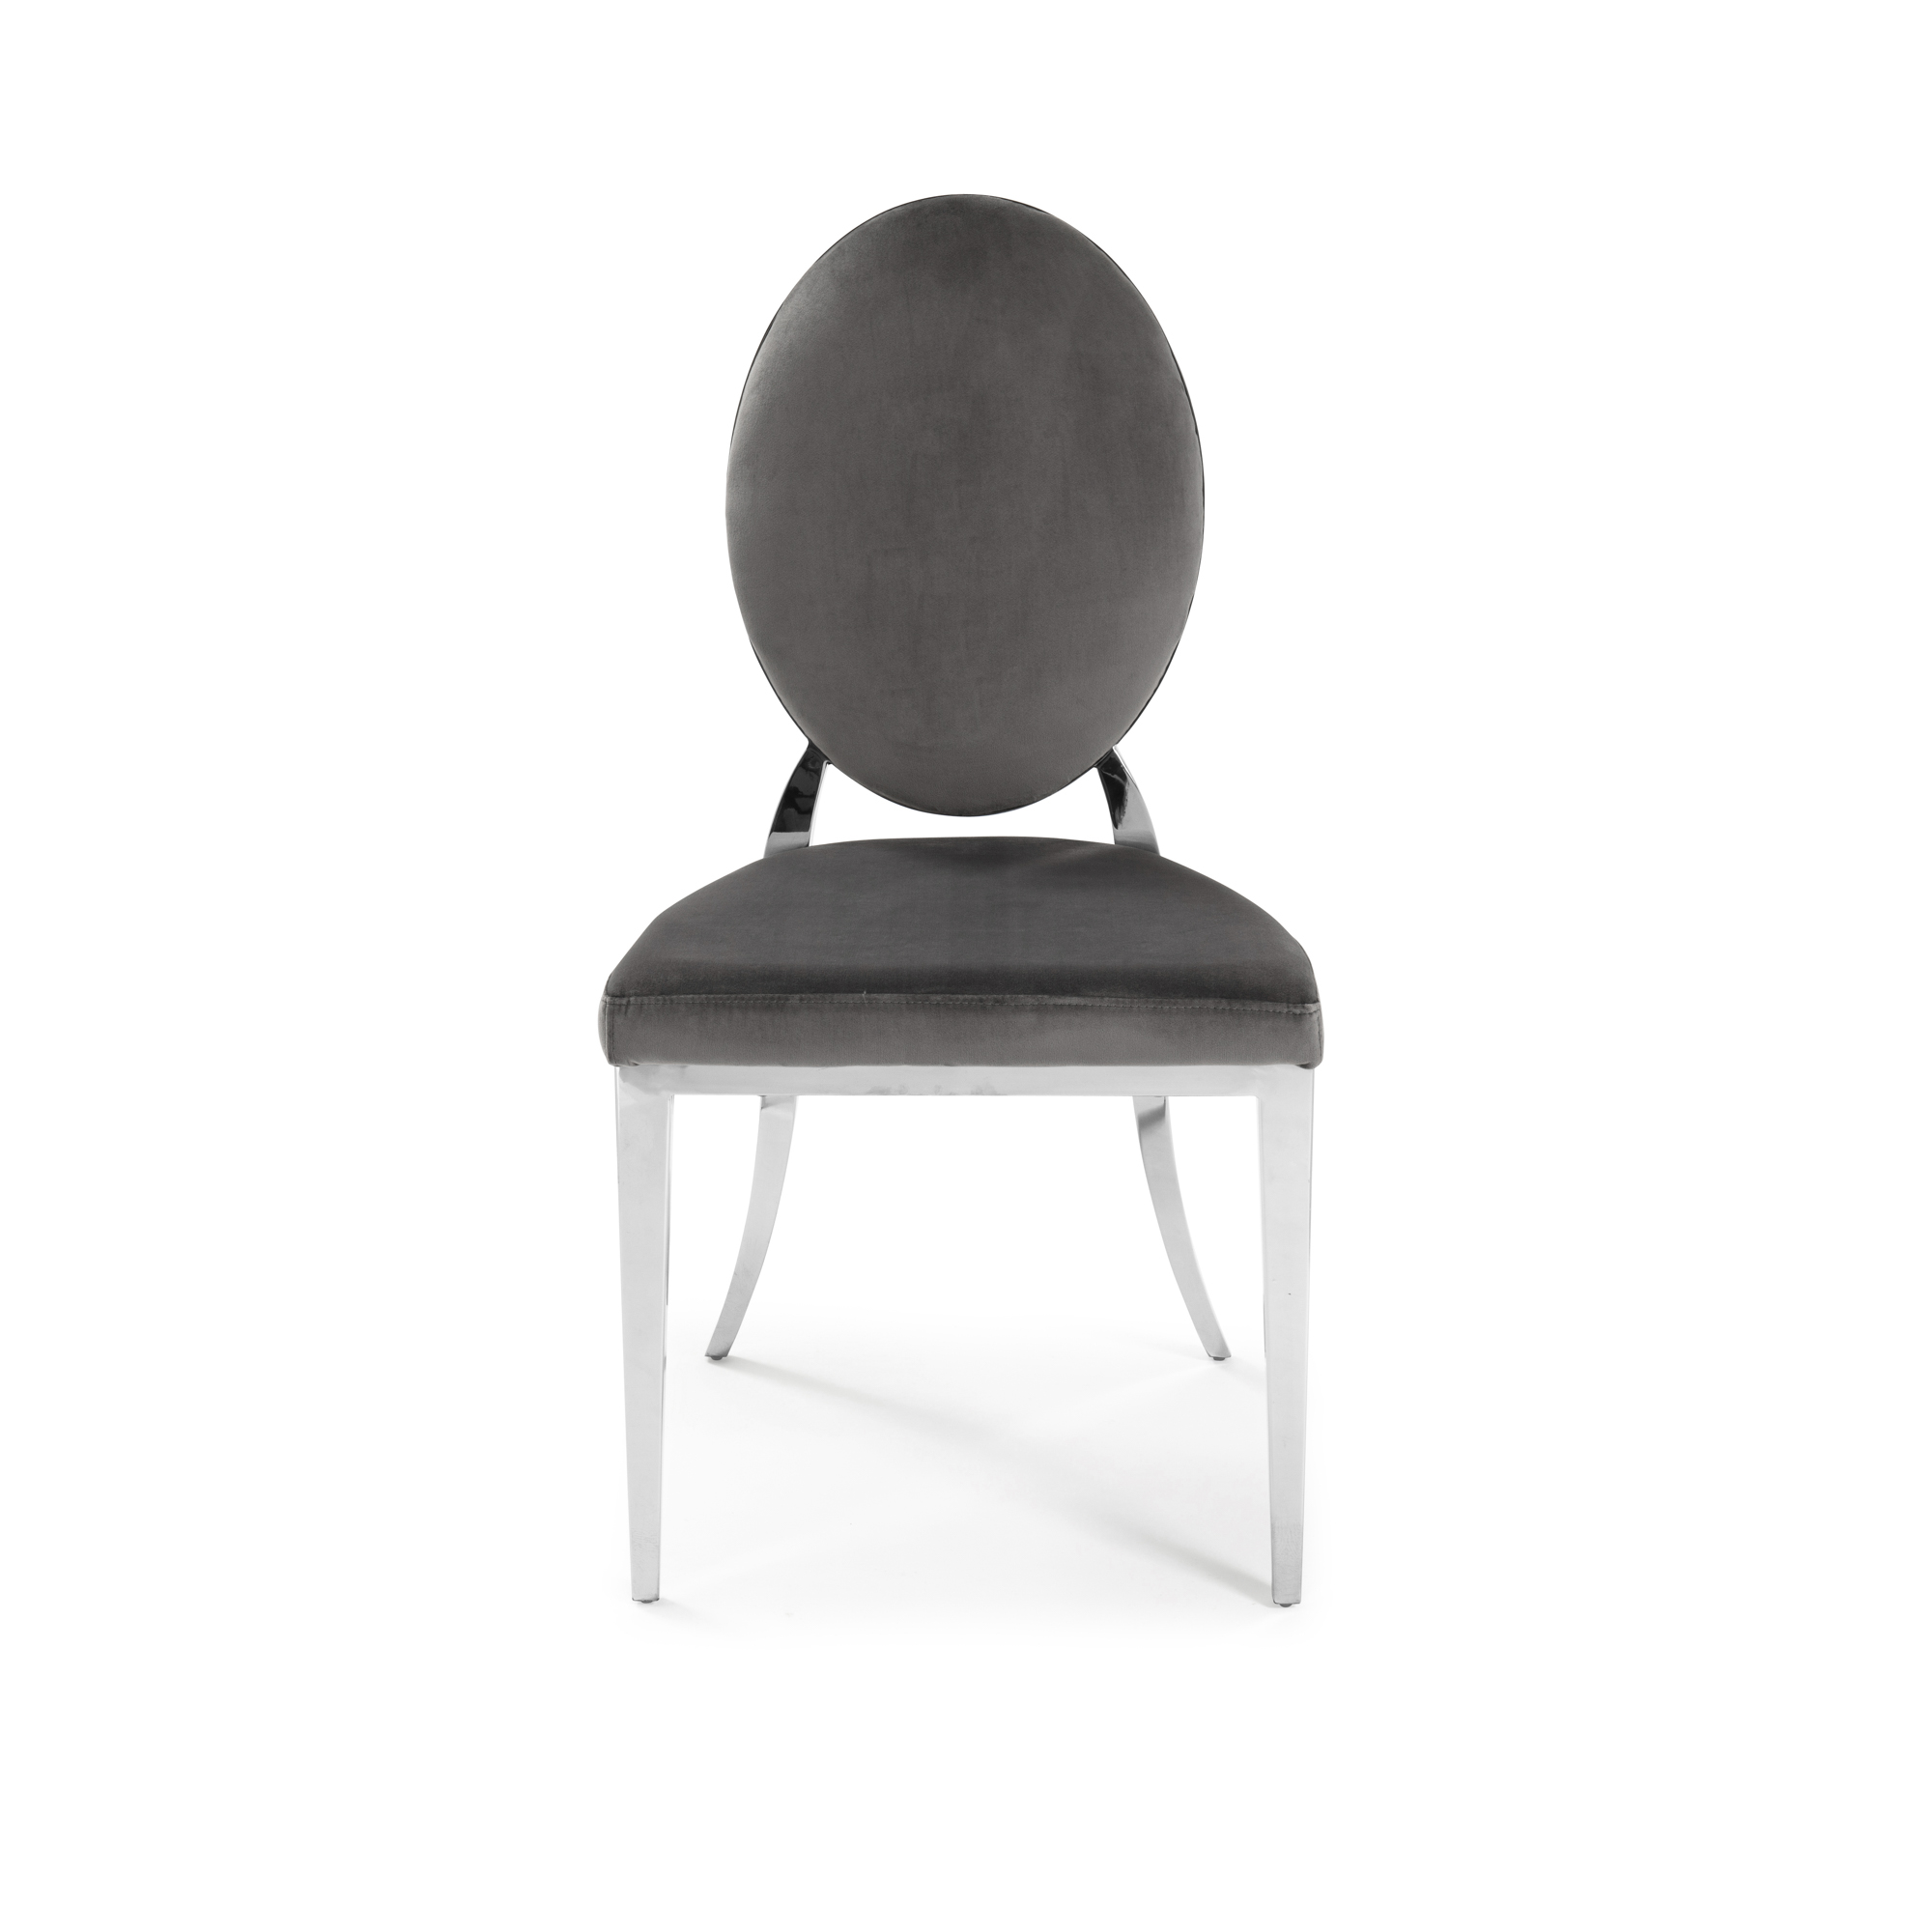 1.3m Louis Round Grey Marble Dining Room Table & Chairs Set